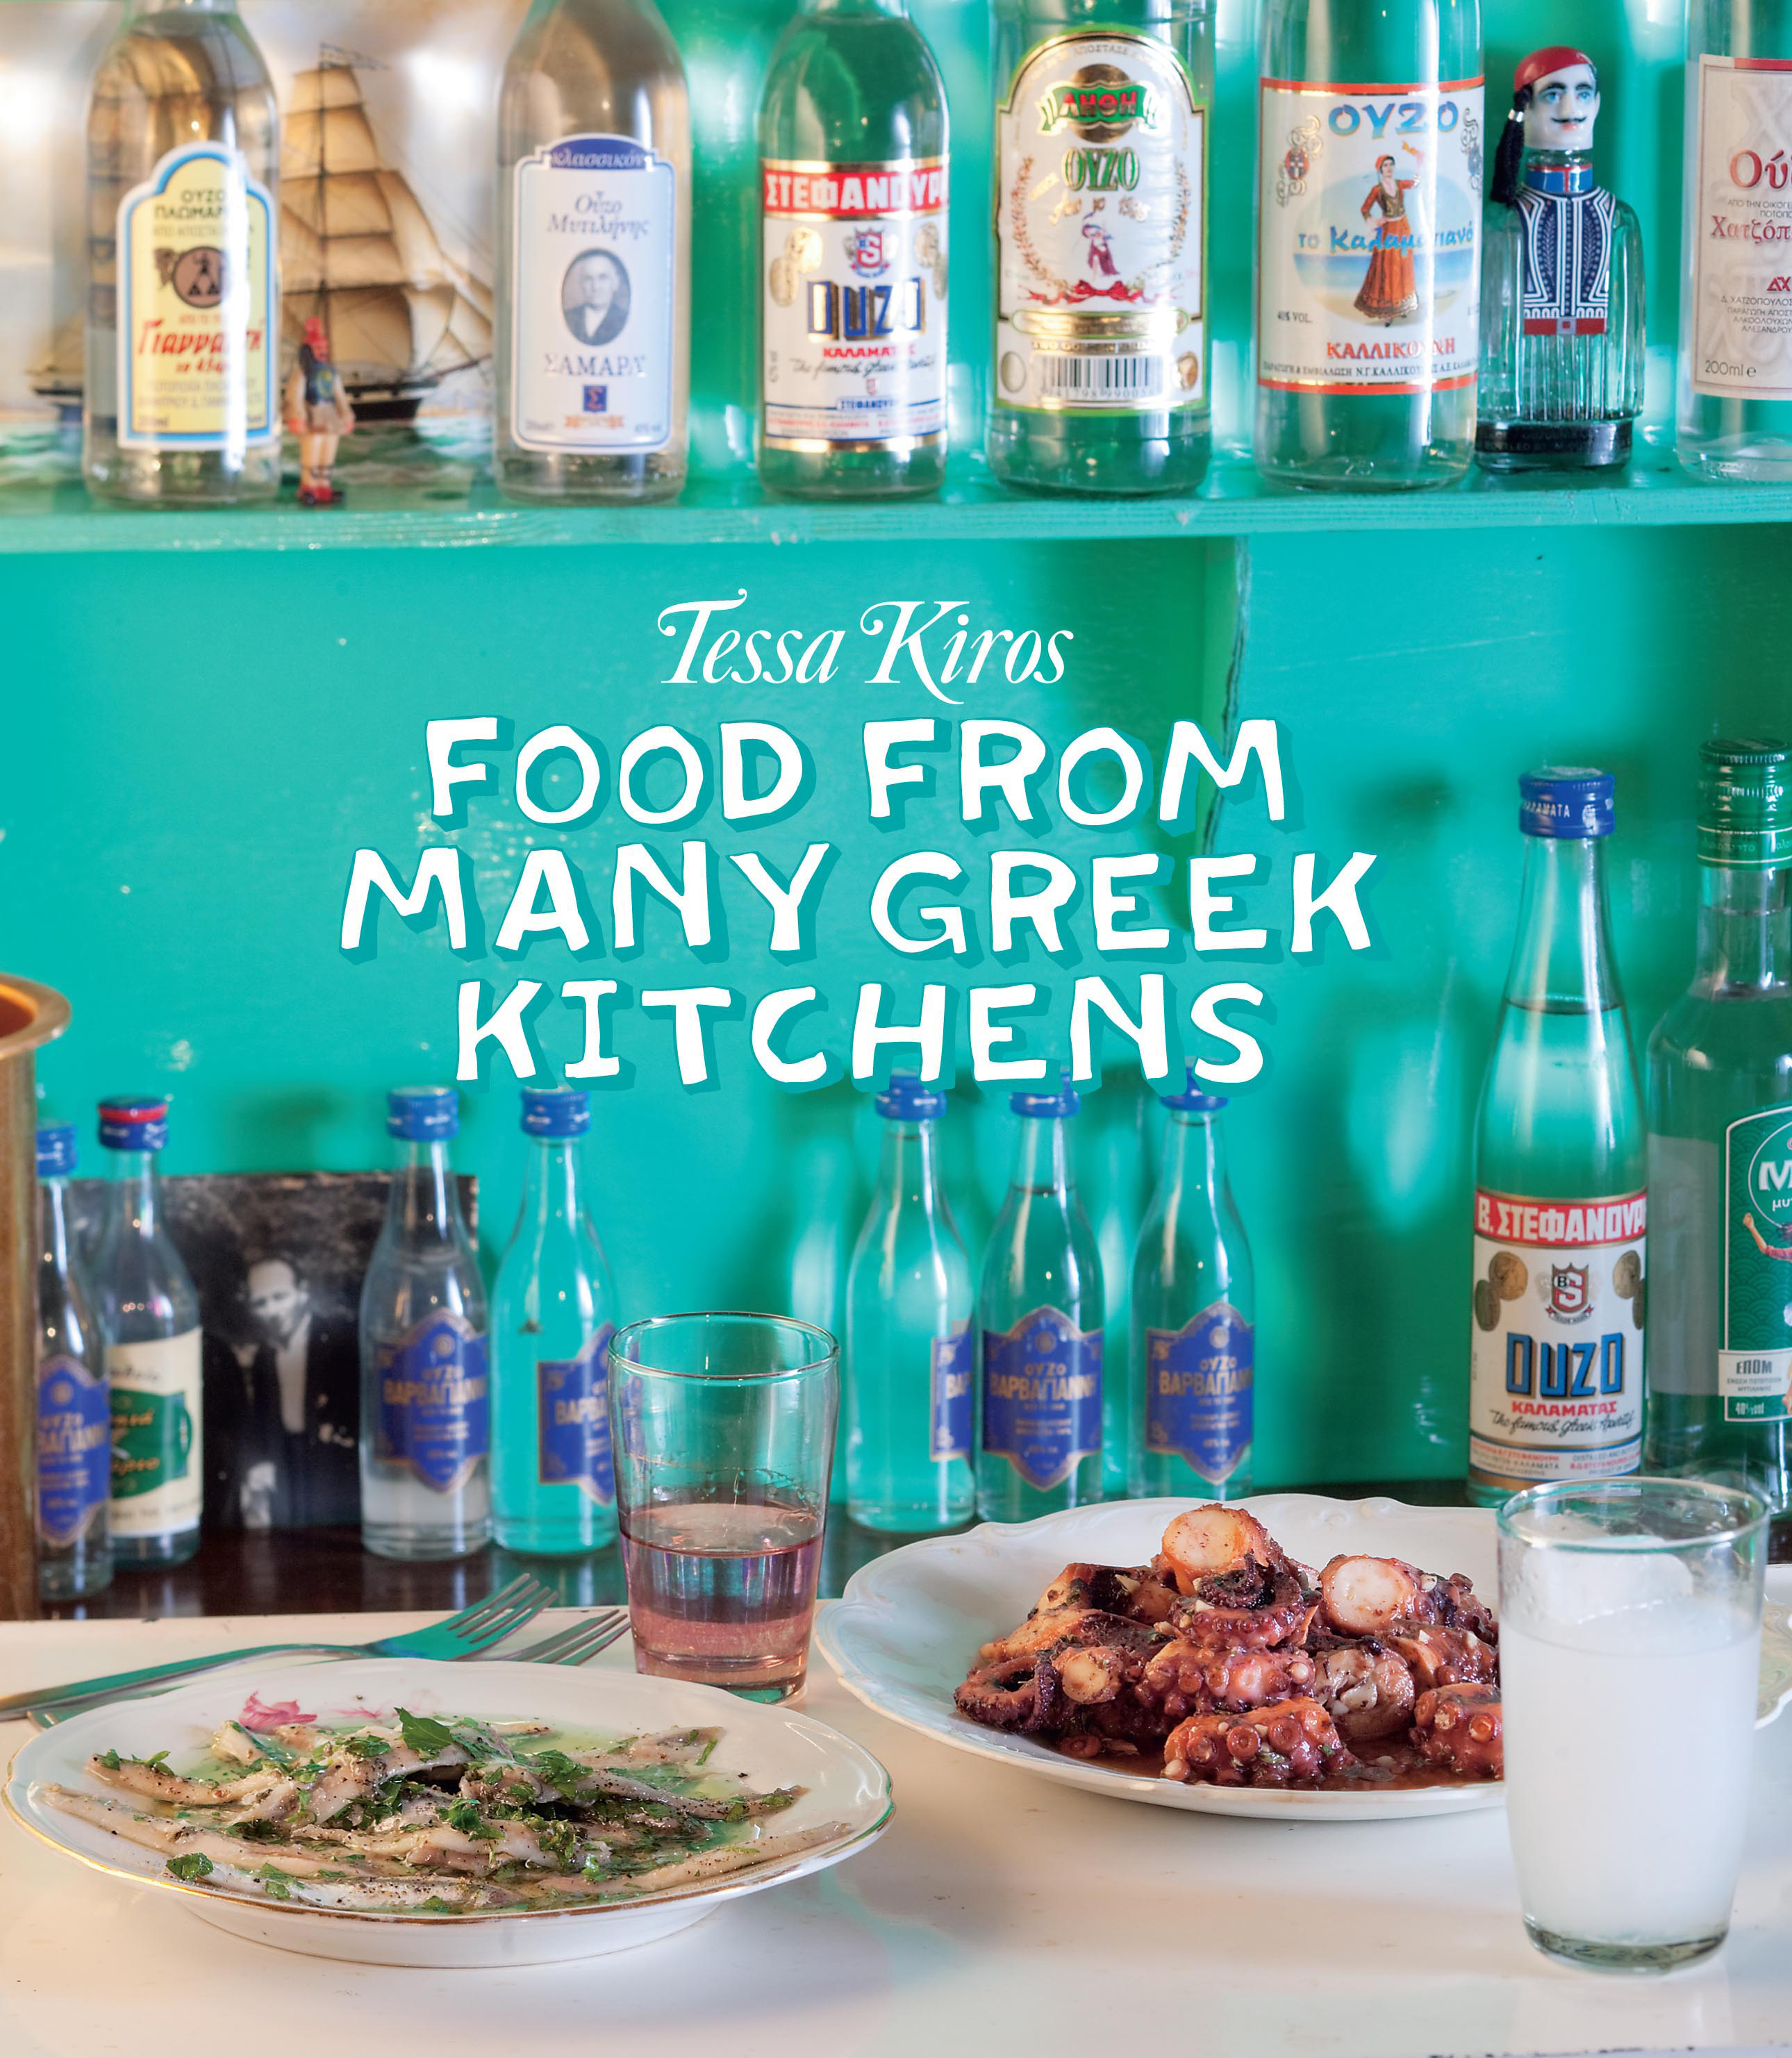 Tessa Kiros - Food From Many Greek Kitchens - Tessa Kiros ...